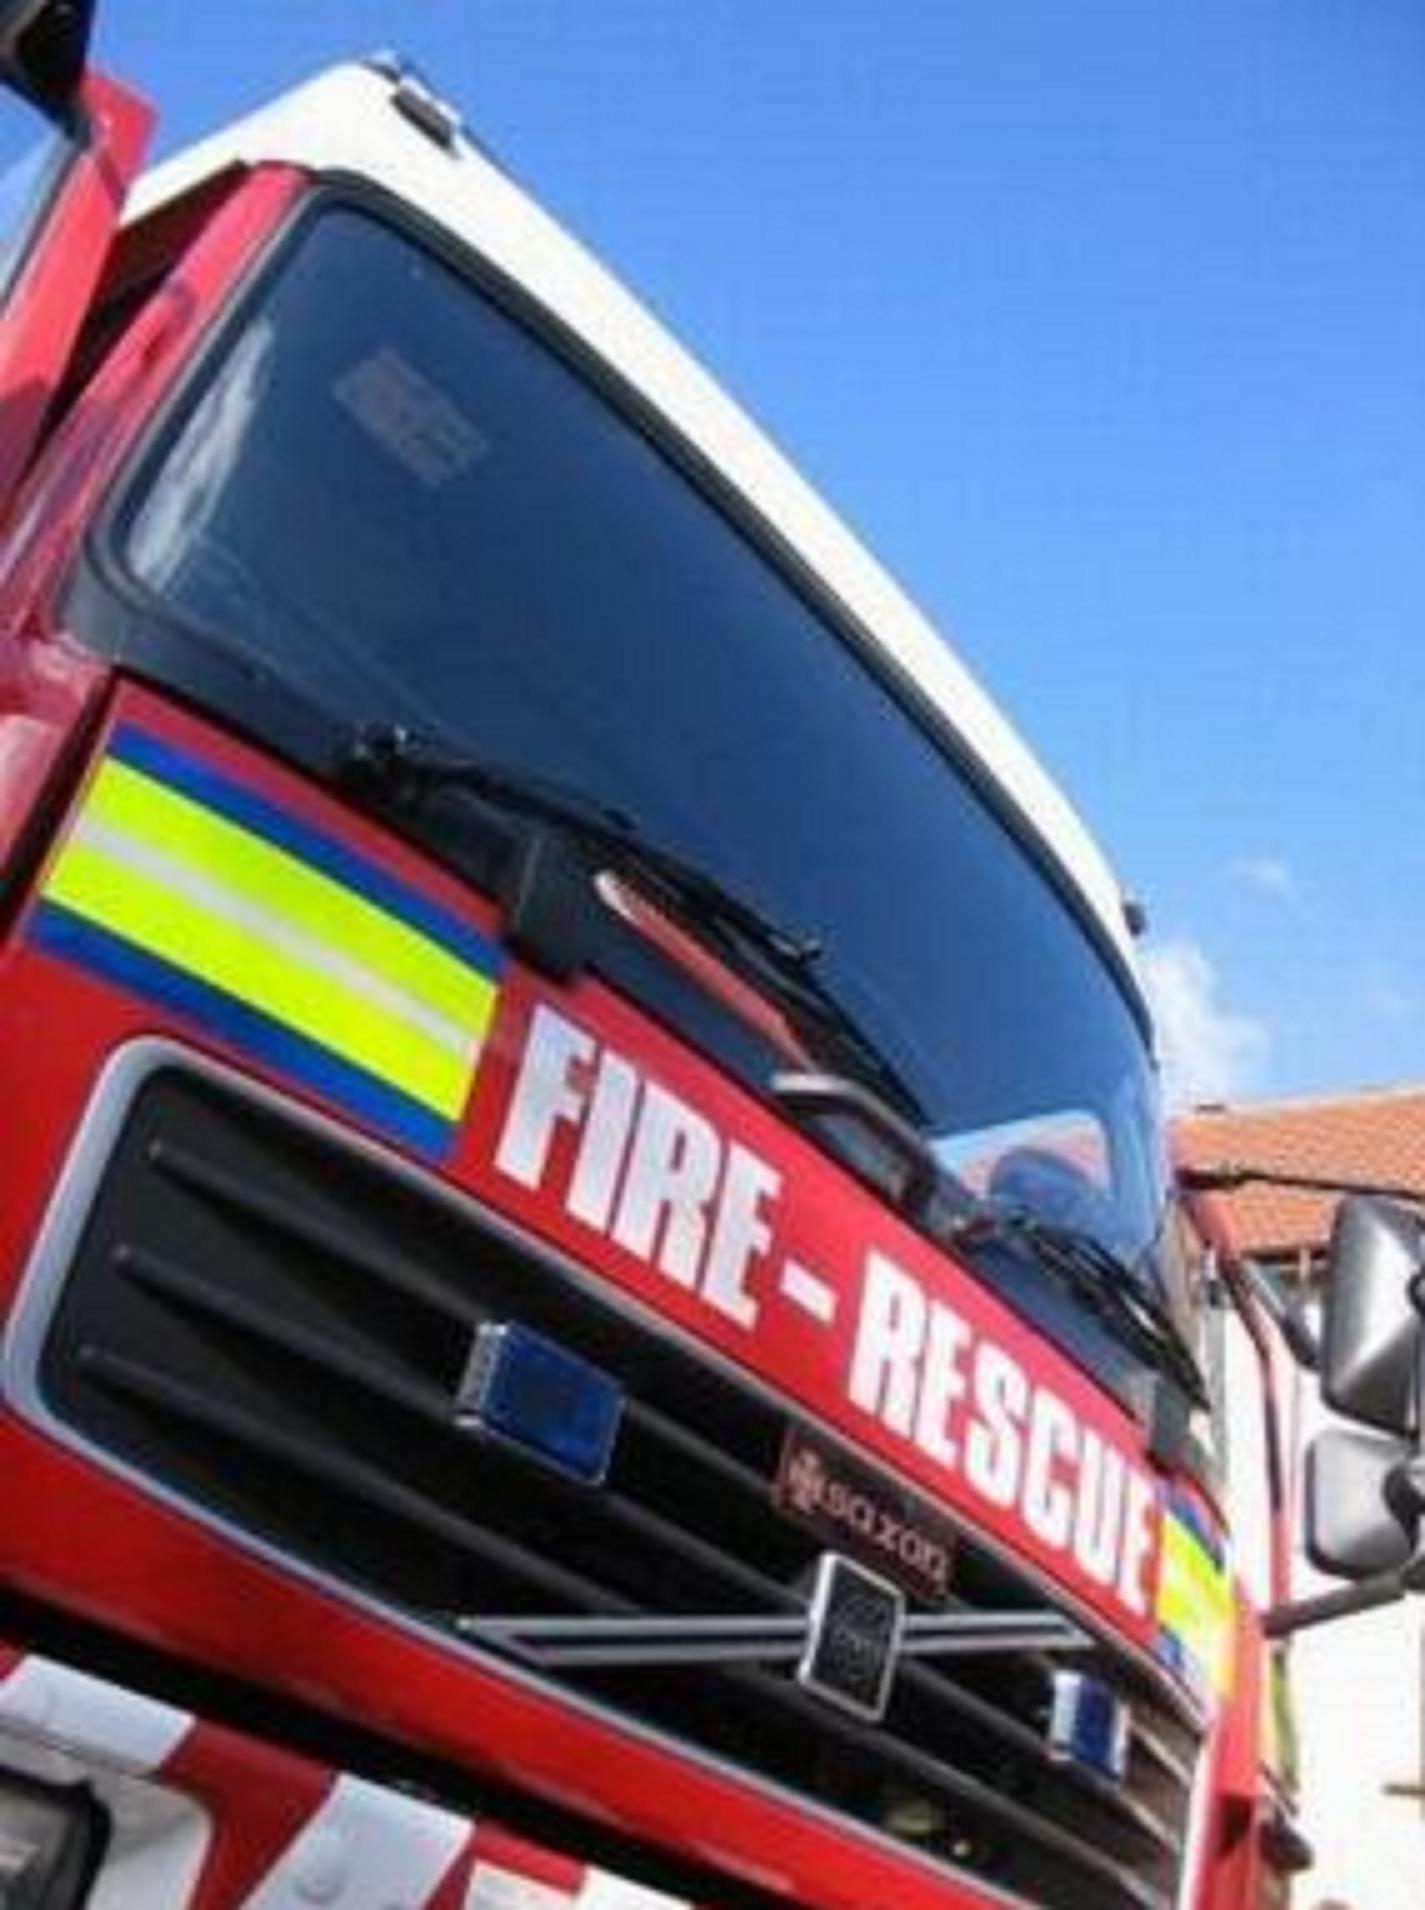 Fire at old people's home in Chard tackled